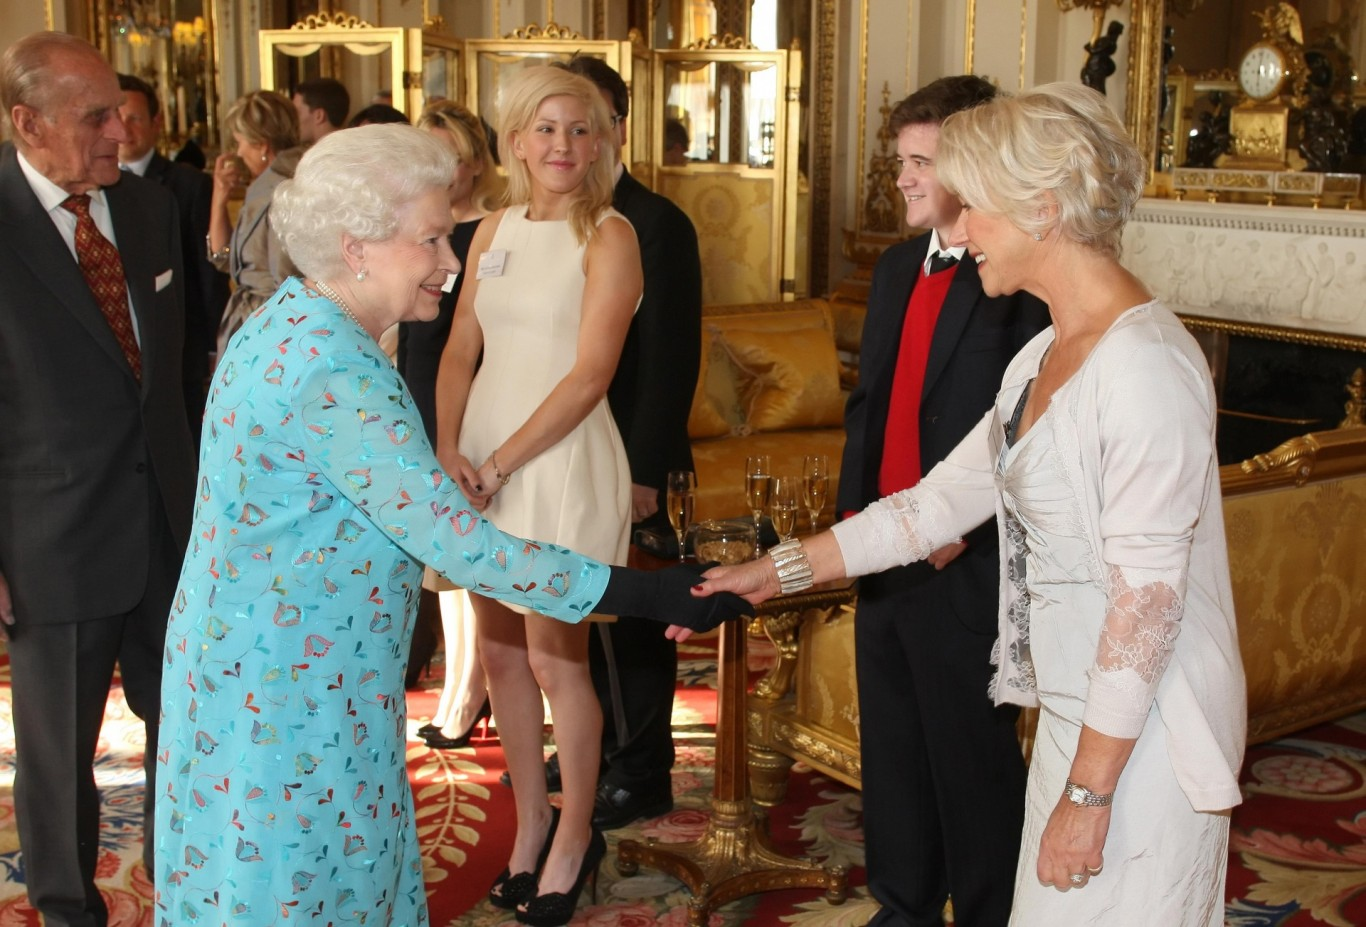 Helen Mirren meeting The Queen  at Buckingham Palace in 2011